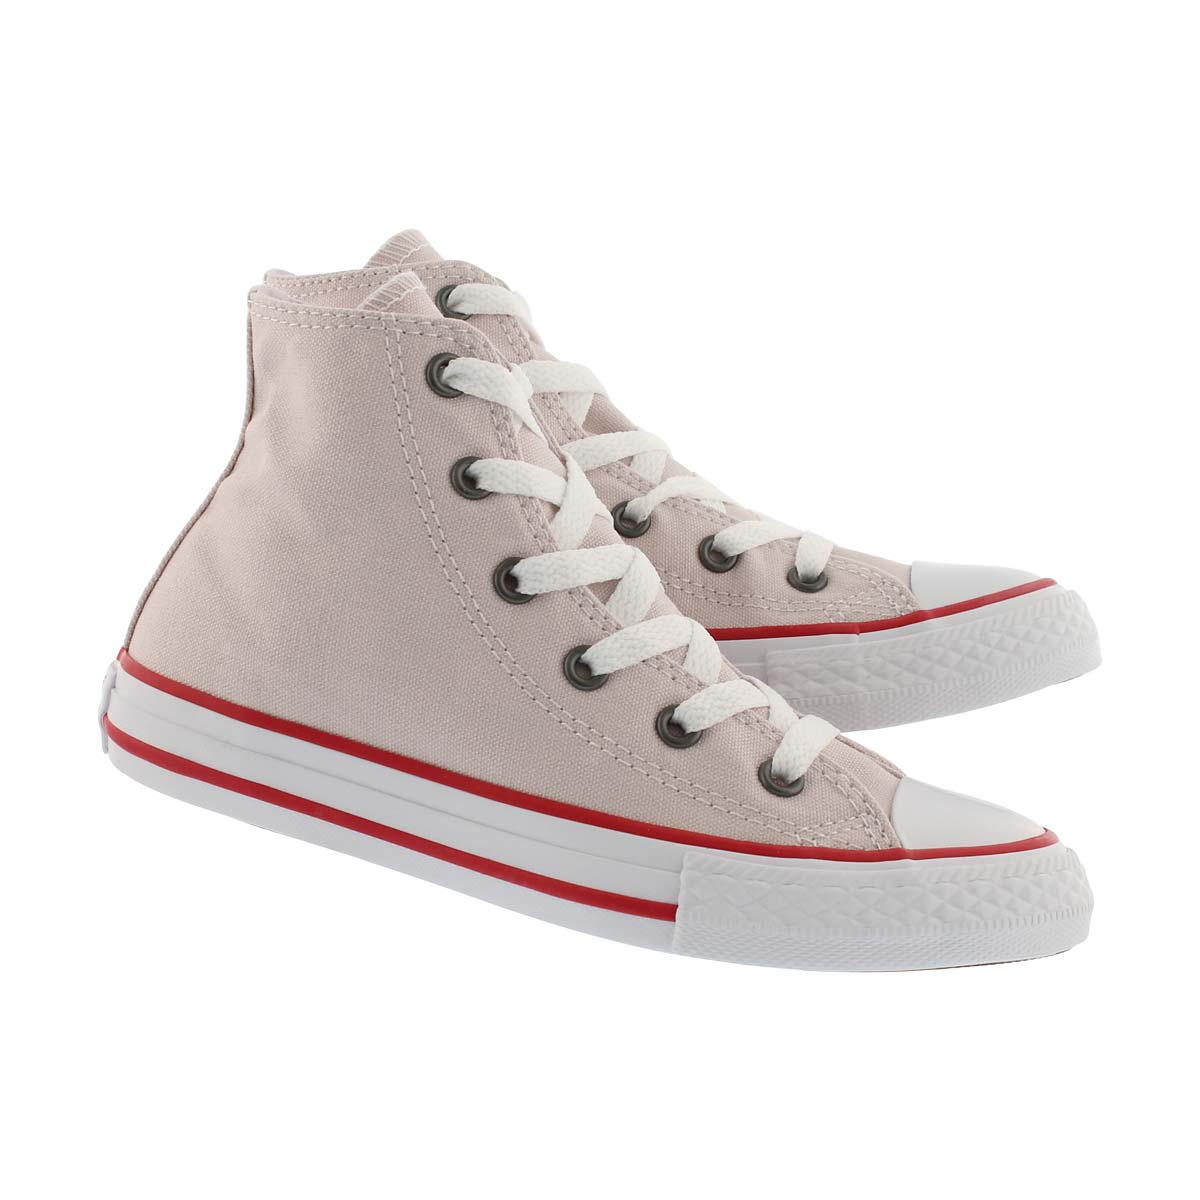 Grls CTAS Seasonal rose/red/wht high top